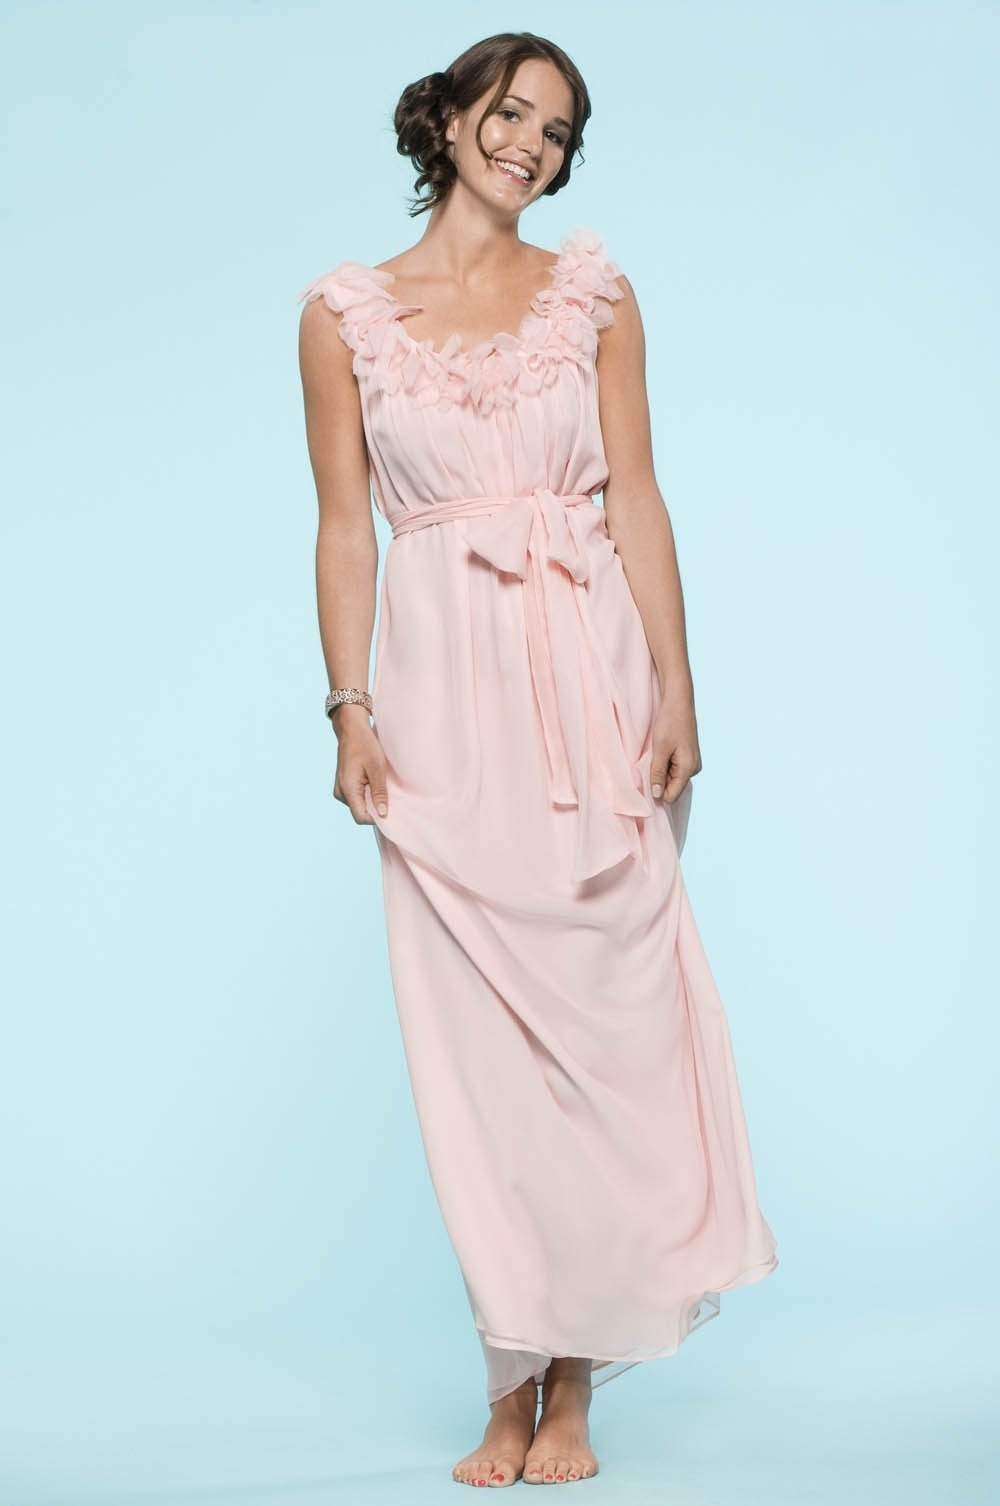 Gadsden Street Dress in Silk Chiffon, $385